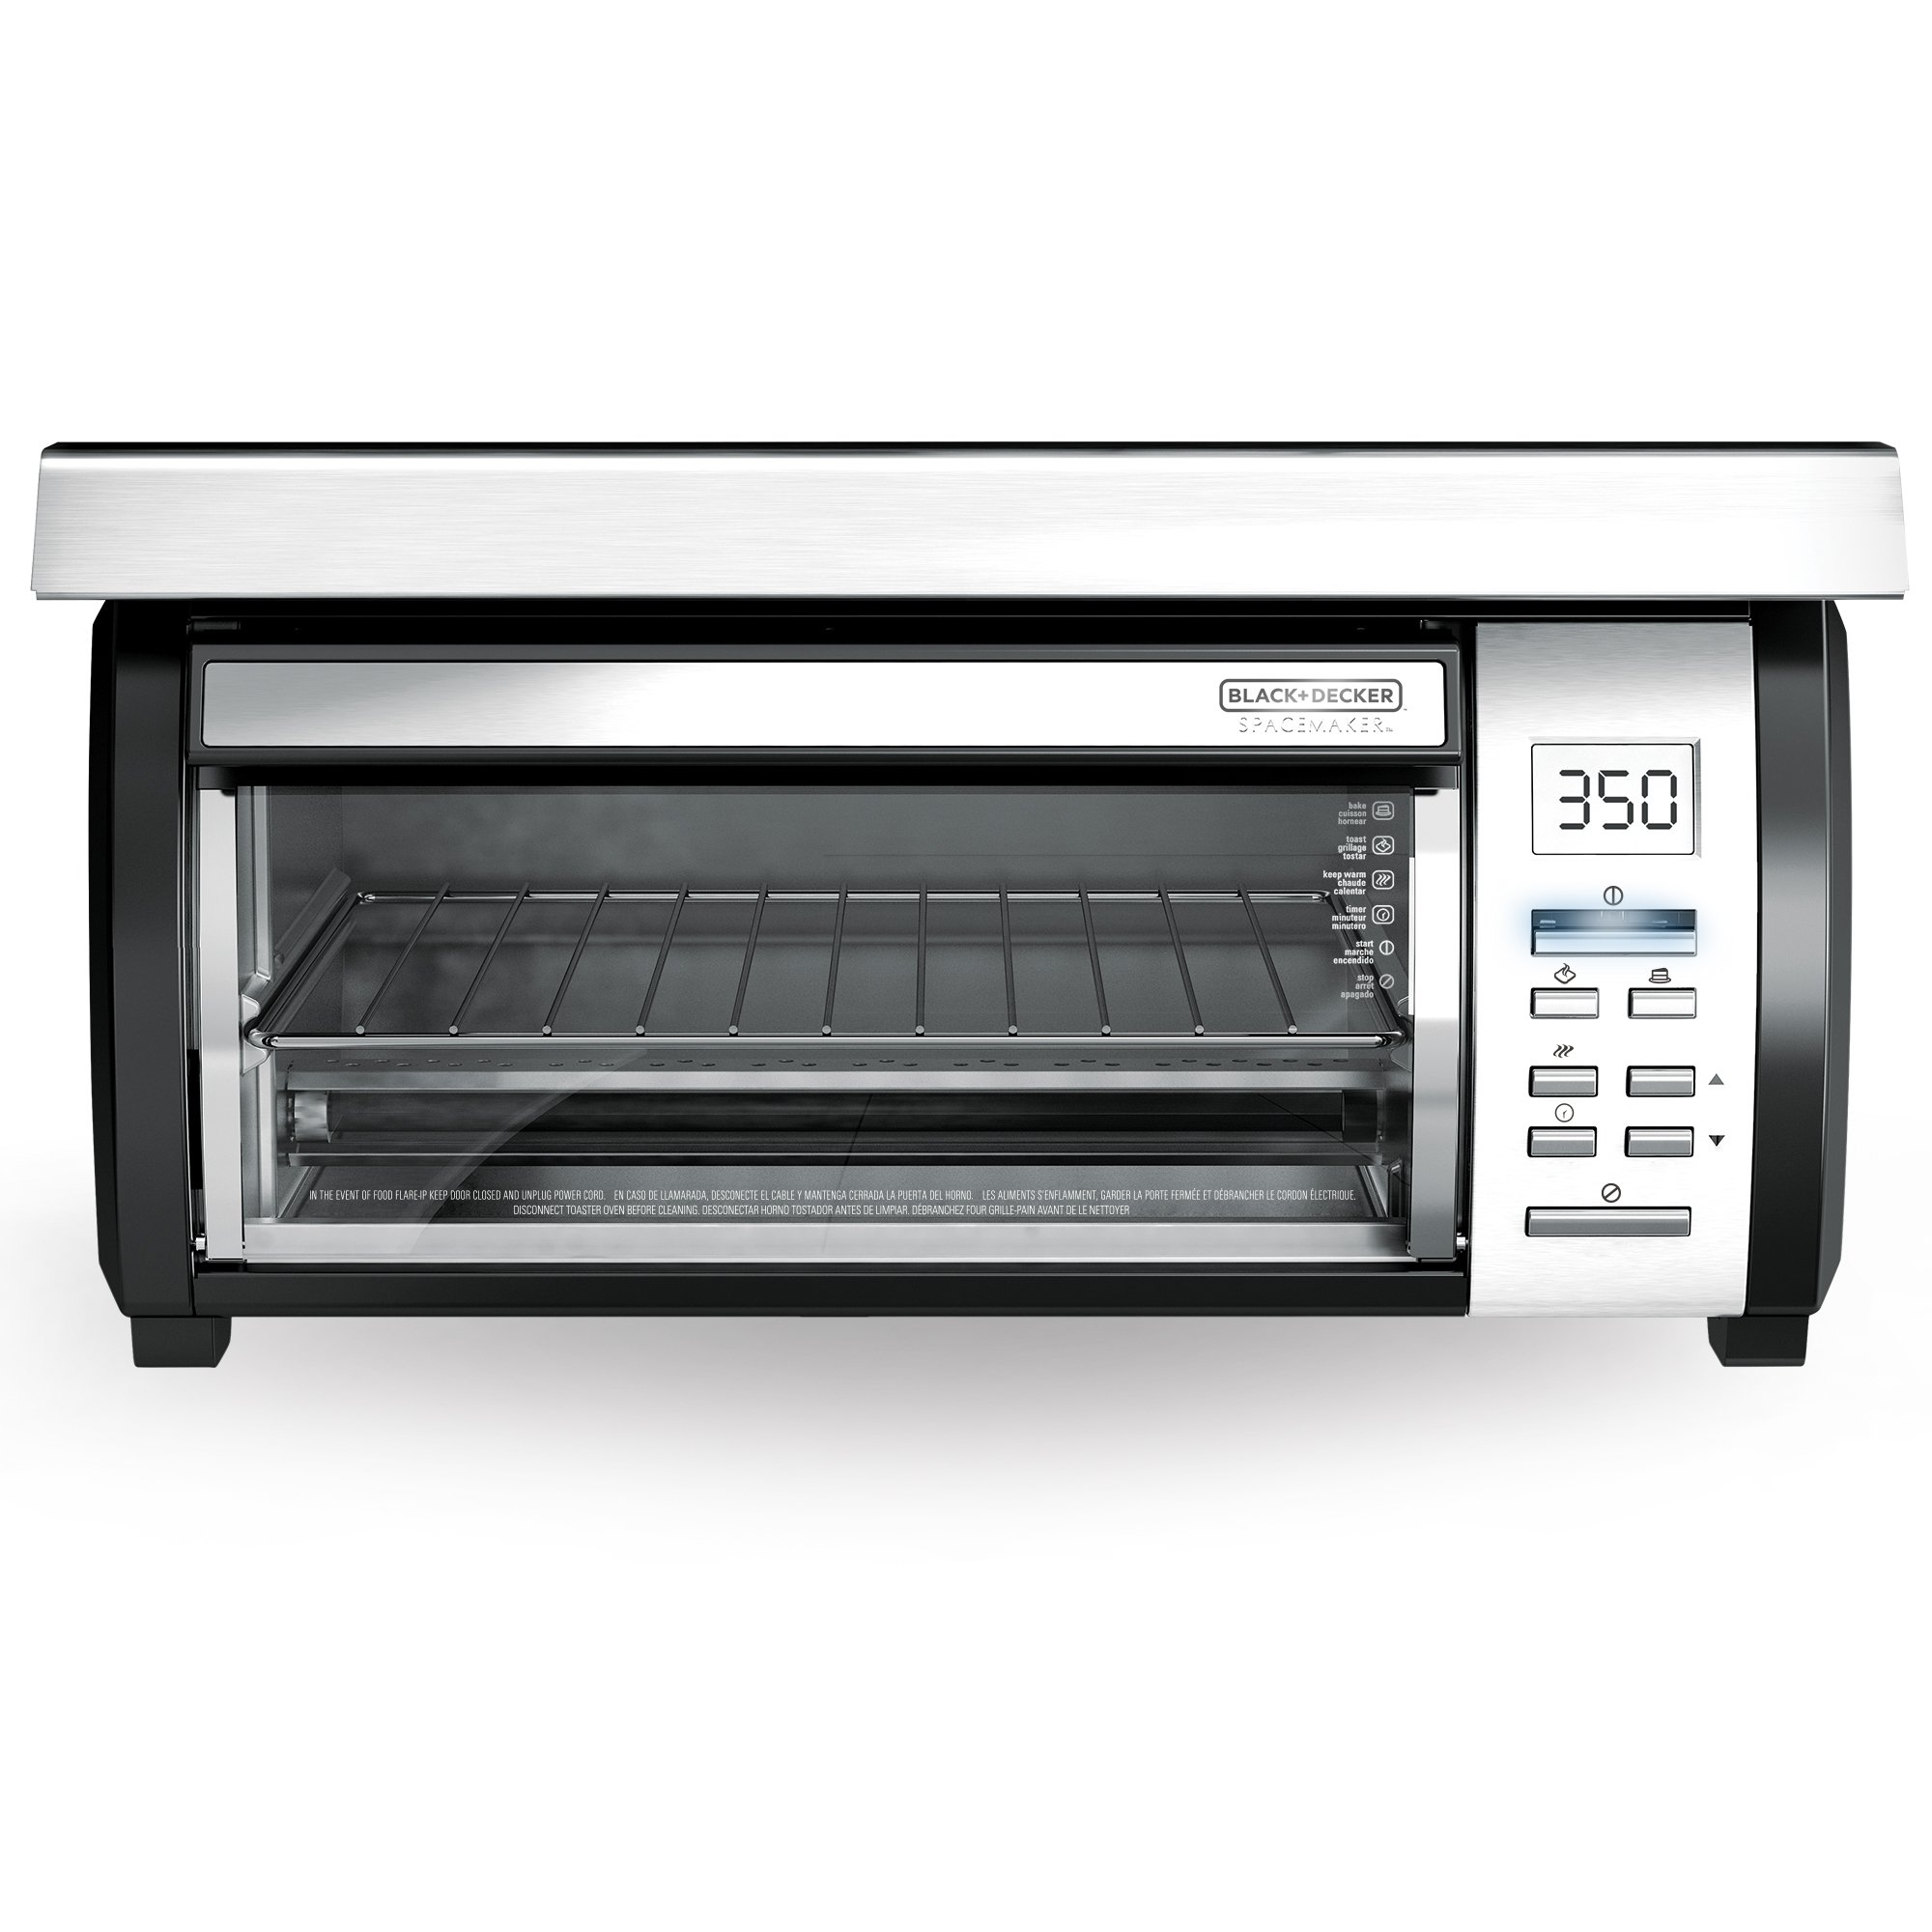 BLACK+DECKER Spacemaker Under-Counter Toaster Oven, Black/Stainless Steel, TROS1000D